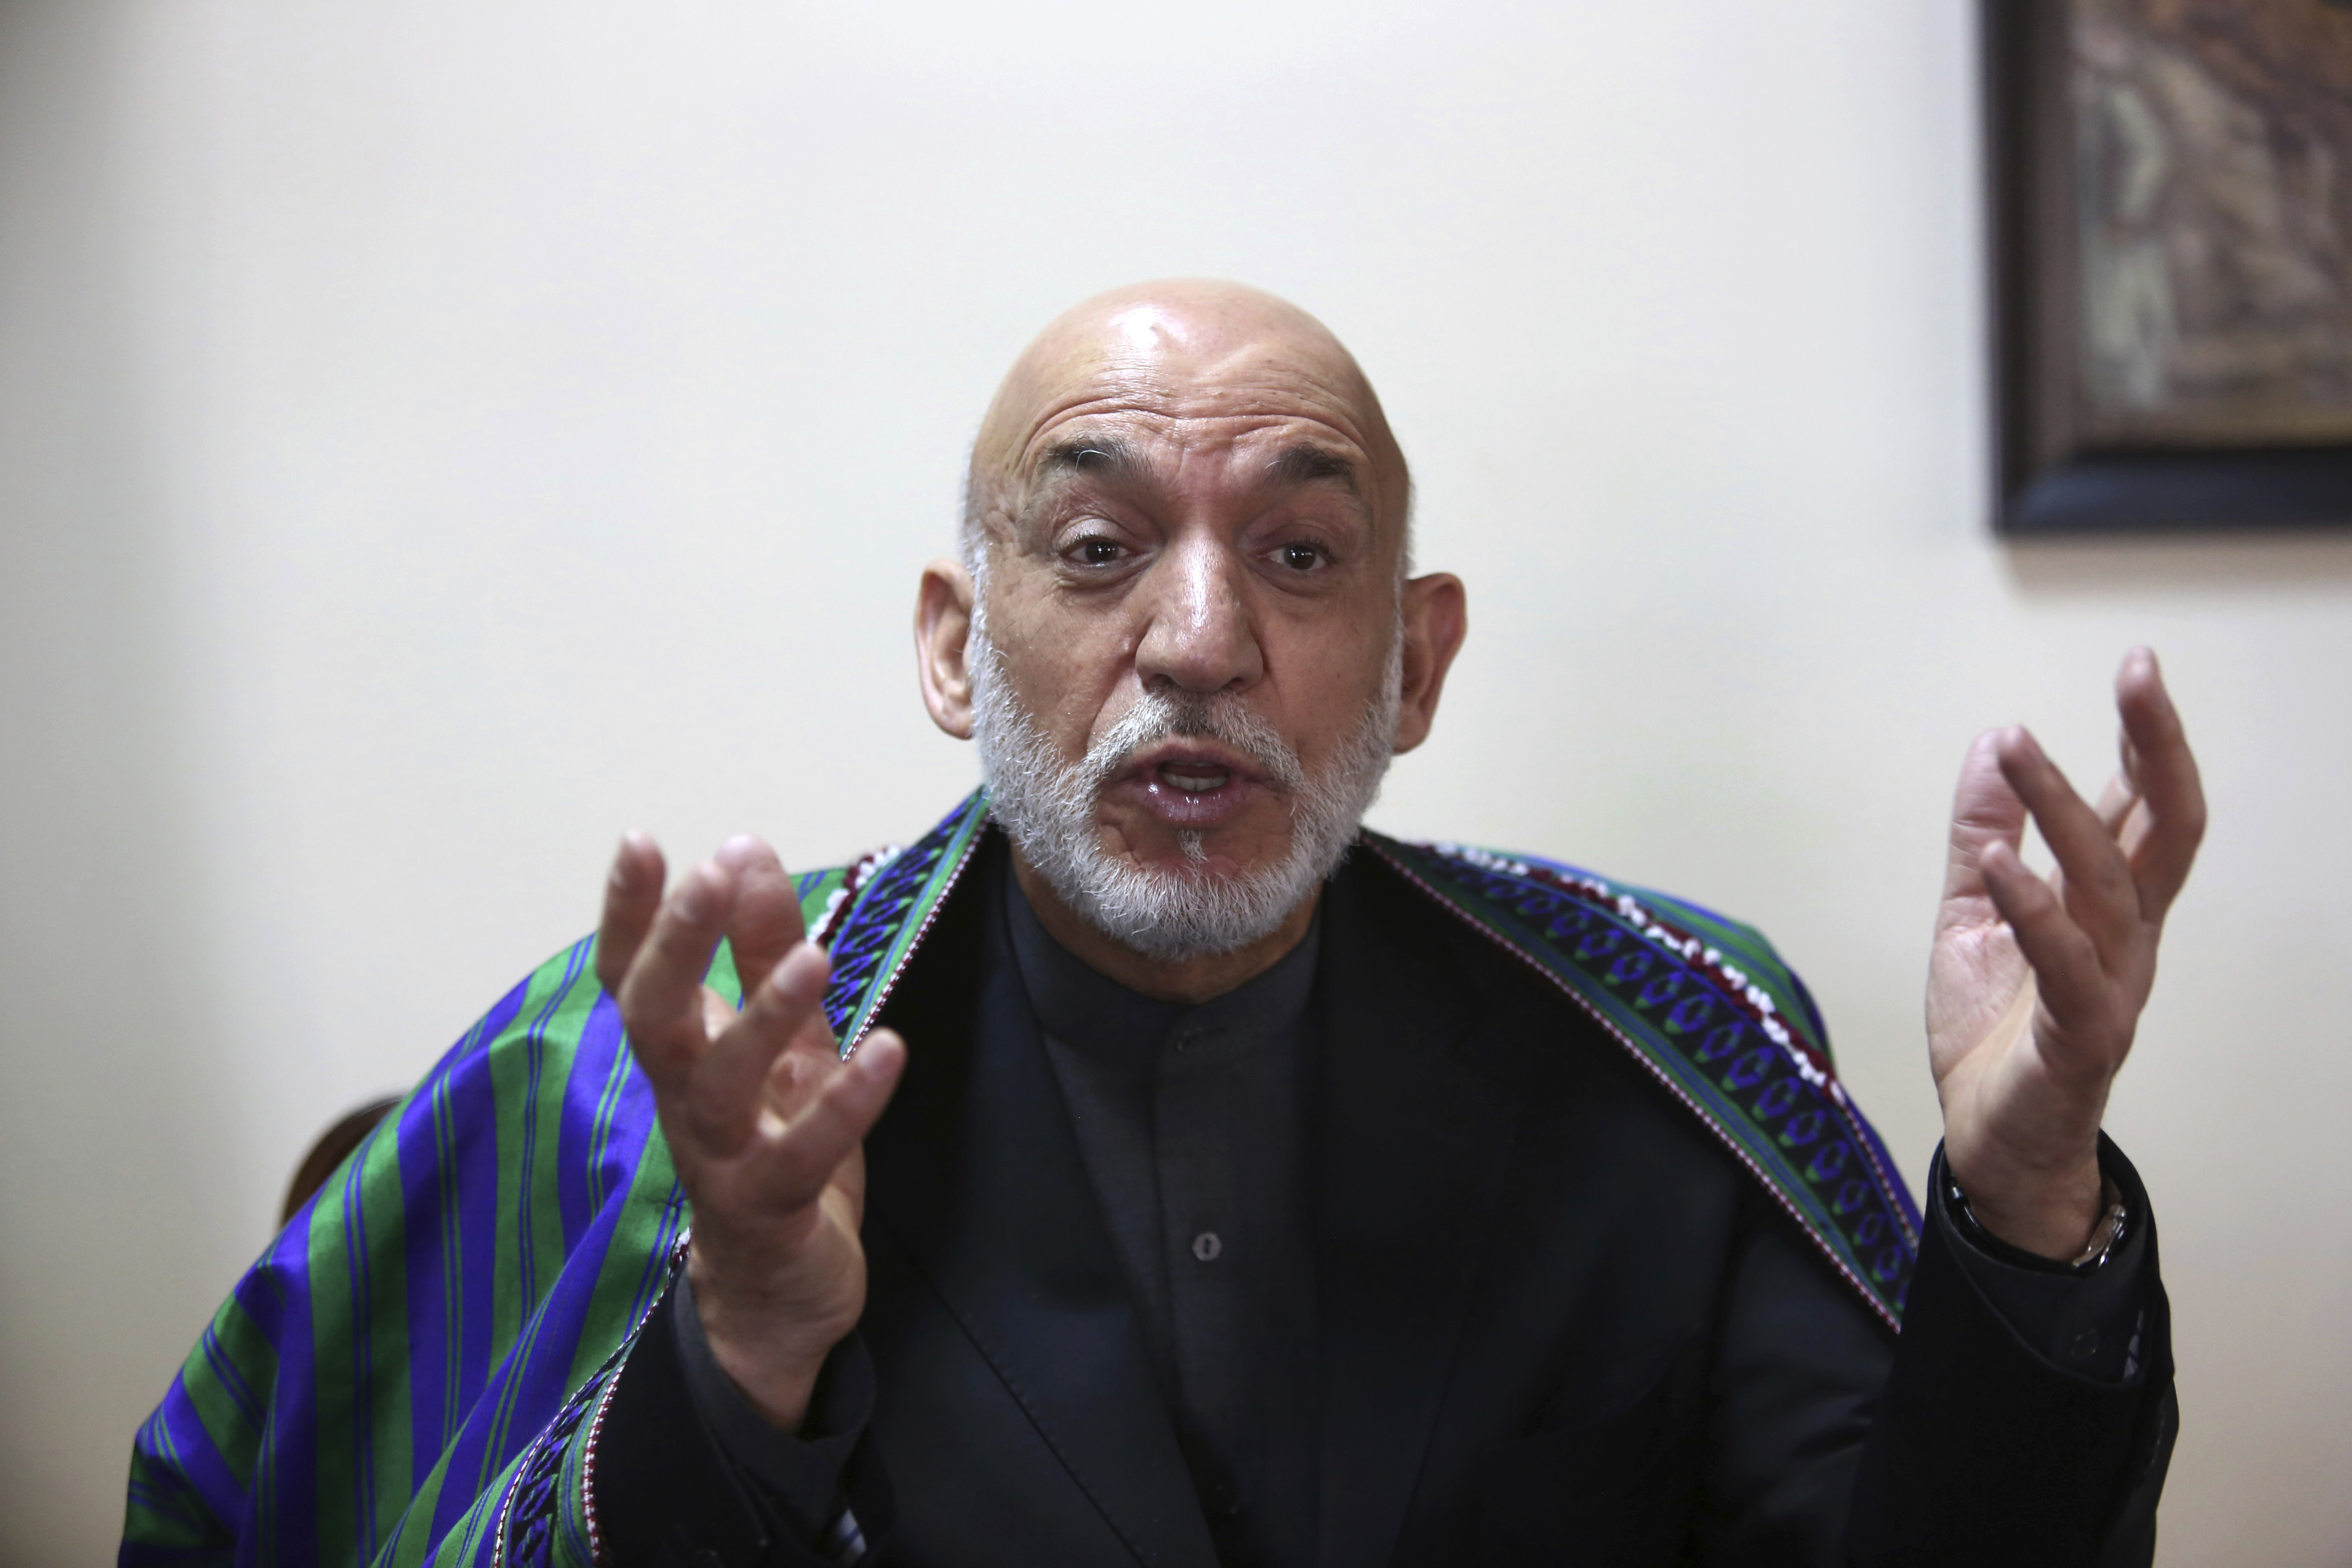 Former Afghan President Hamid Karzai speaks during an interview with the Associated Press in Kabul, Afghanistan, April 17, 2017.